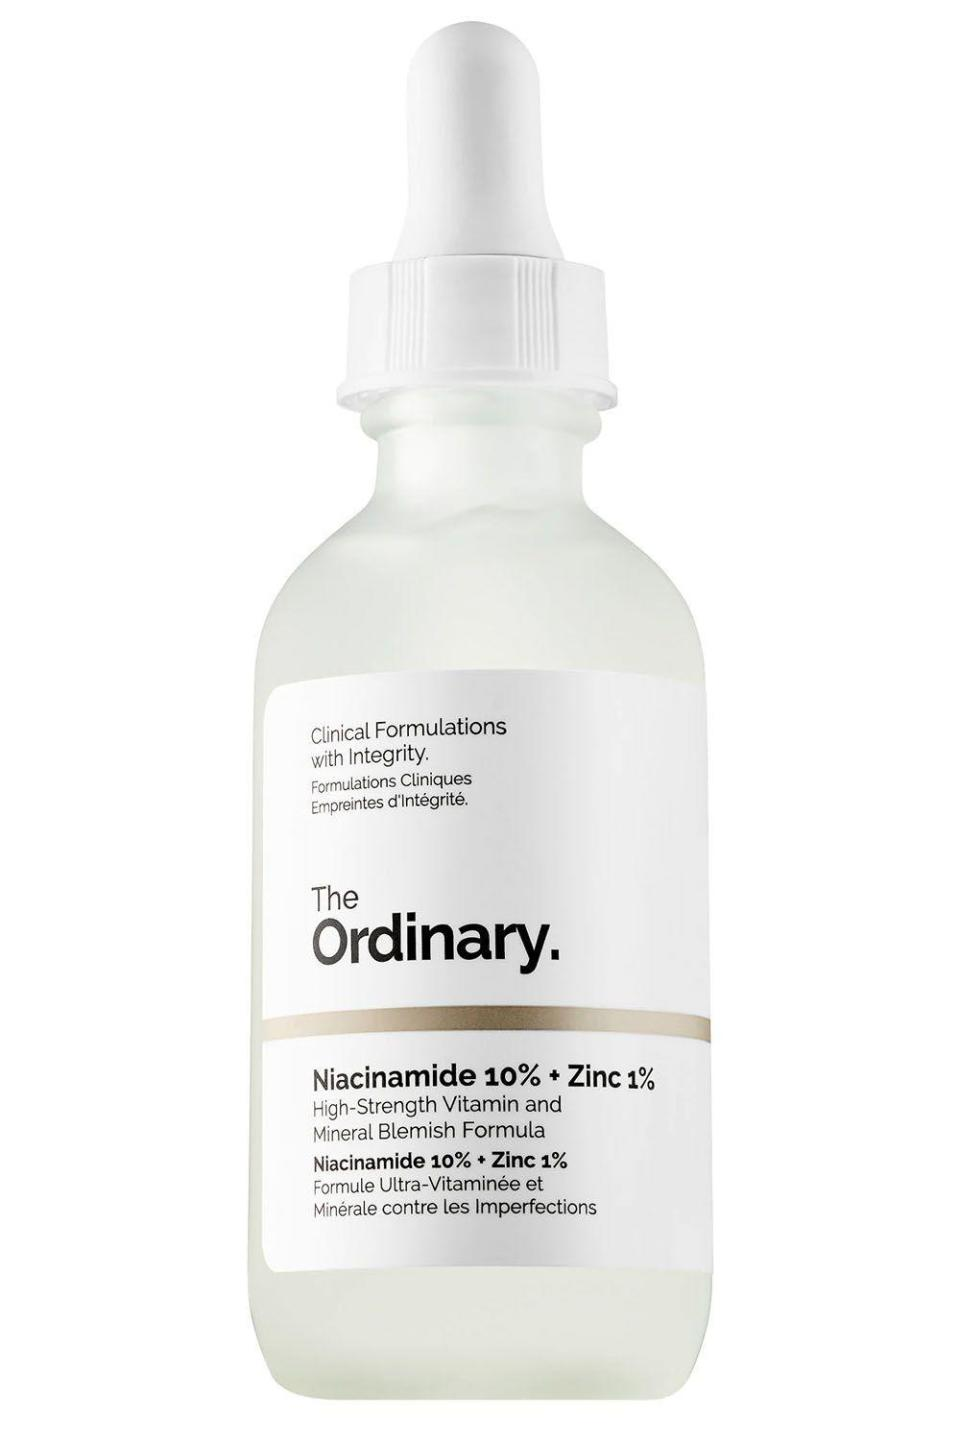 """<p><strong>The Ordinary</strong></p><p>theordinary.deciem.com</p><p><strong>$5.90</strong></p><p><a href=""""https://theordinary.deciem.com/product/rdn-niacinamide-10pct-zinc-1pct-30ml"""" rel=""""nofollow noopener"""" target=""""_blank"""" data-ylk=""""slk:Shop Now"""" class=""""link rapid-noclick-resp"""">Shop Now</a></p><p>The star of the show in this acne serum's formula is <a href=""""https://www.cosmopolitan.com/style-beauty/beauty/g28844492/best-niacinamide-serums/"""" rel=""""nofollow noopener"""" target=""""_blank"""" data-ylk=""""slk:niacinamide"""" class=""""link rapid-noclick-resp"""">niacinamide</a>, an MVP ingredient that will transform your oily skin. It balances oil production, meaning<strong> your T-zone will def be less shiny, </strong>while also reducing acne spots and soothing inflammation. You'll be left with clearer, brighter, and less greasy skin.<br></p>"""